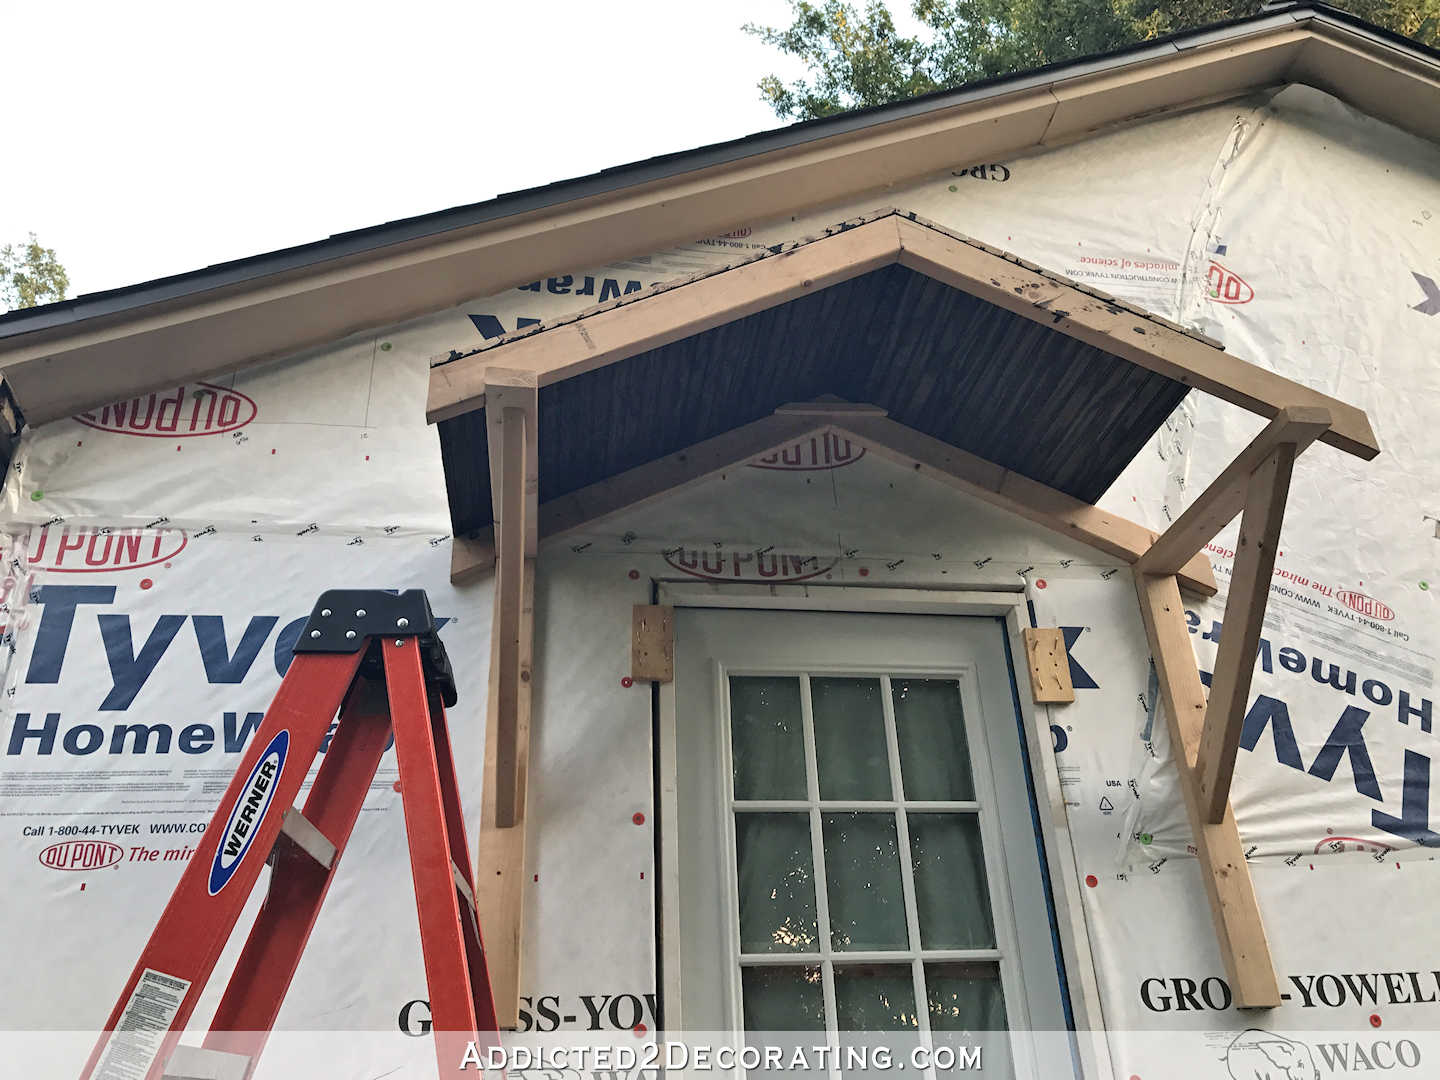 Best Diy Portico Part 2 Finishing The Ceiling The Roof This Month